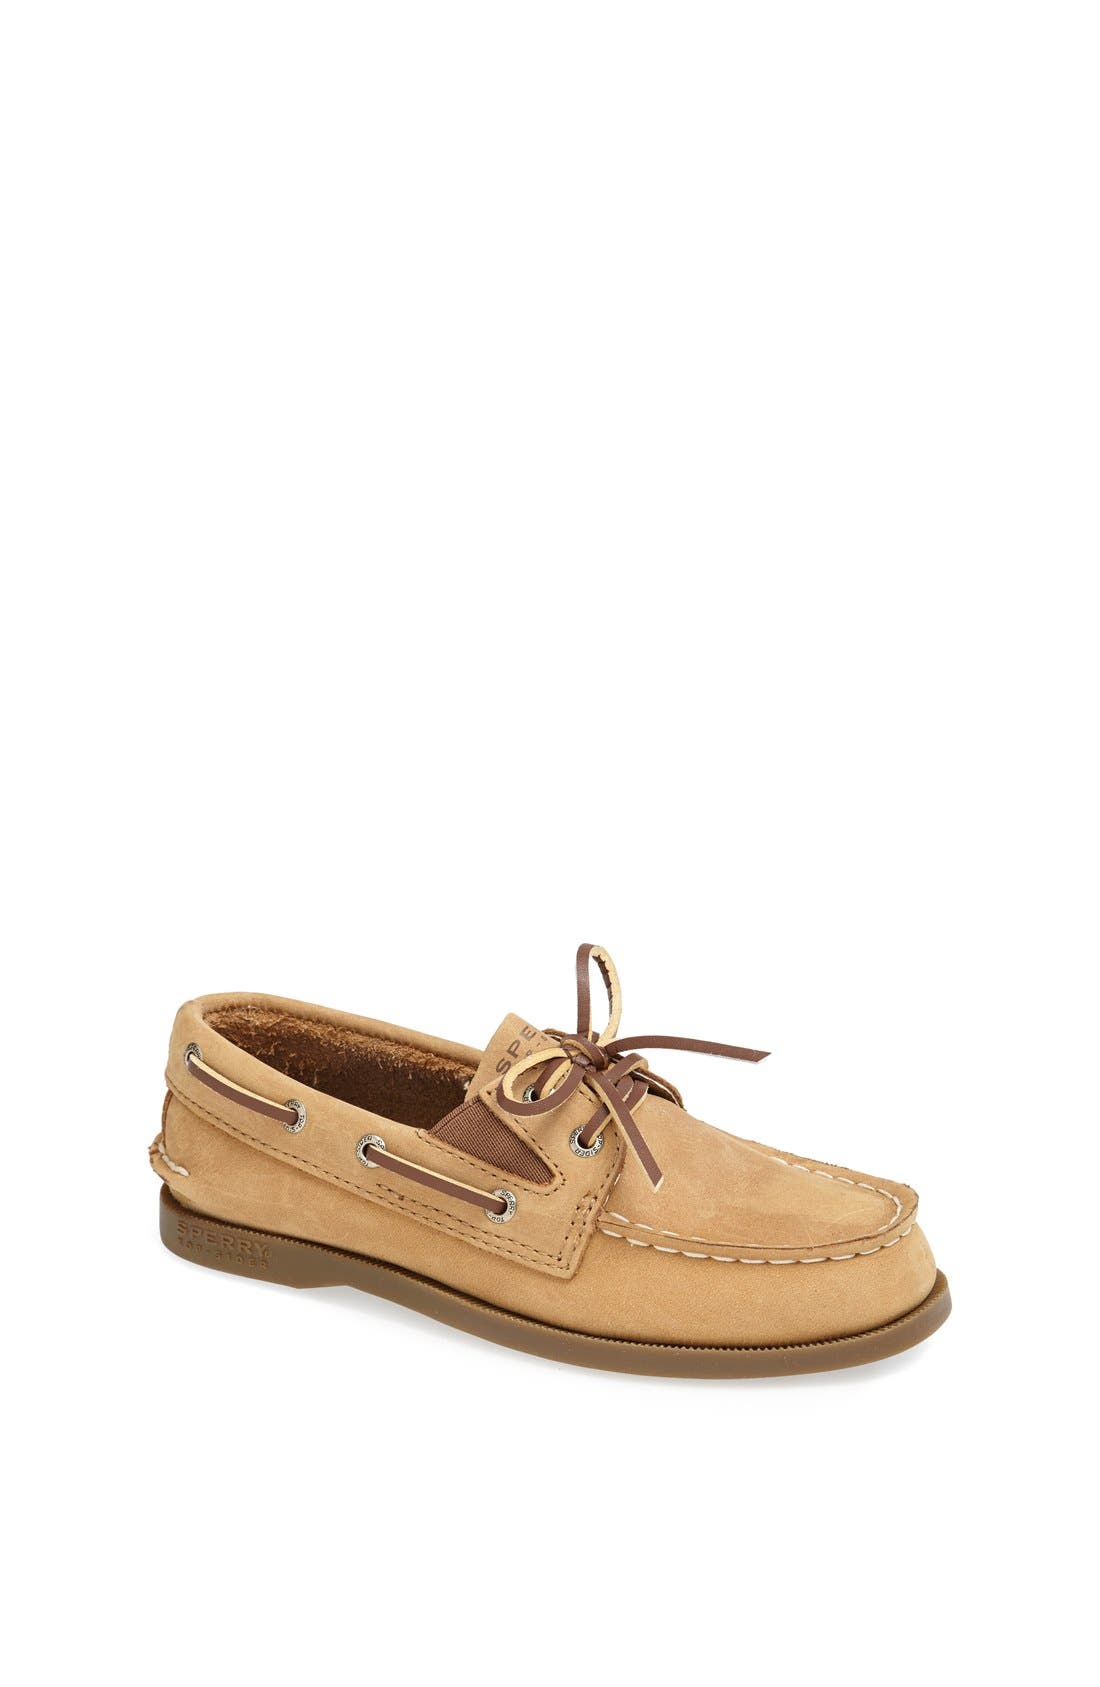 Alternate Image 1 Selected - Sperry Kids 'Authentic Original' Boat Shoe (Walker, Toddler, Little Kid & Big Kid)